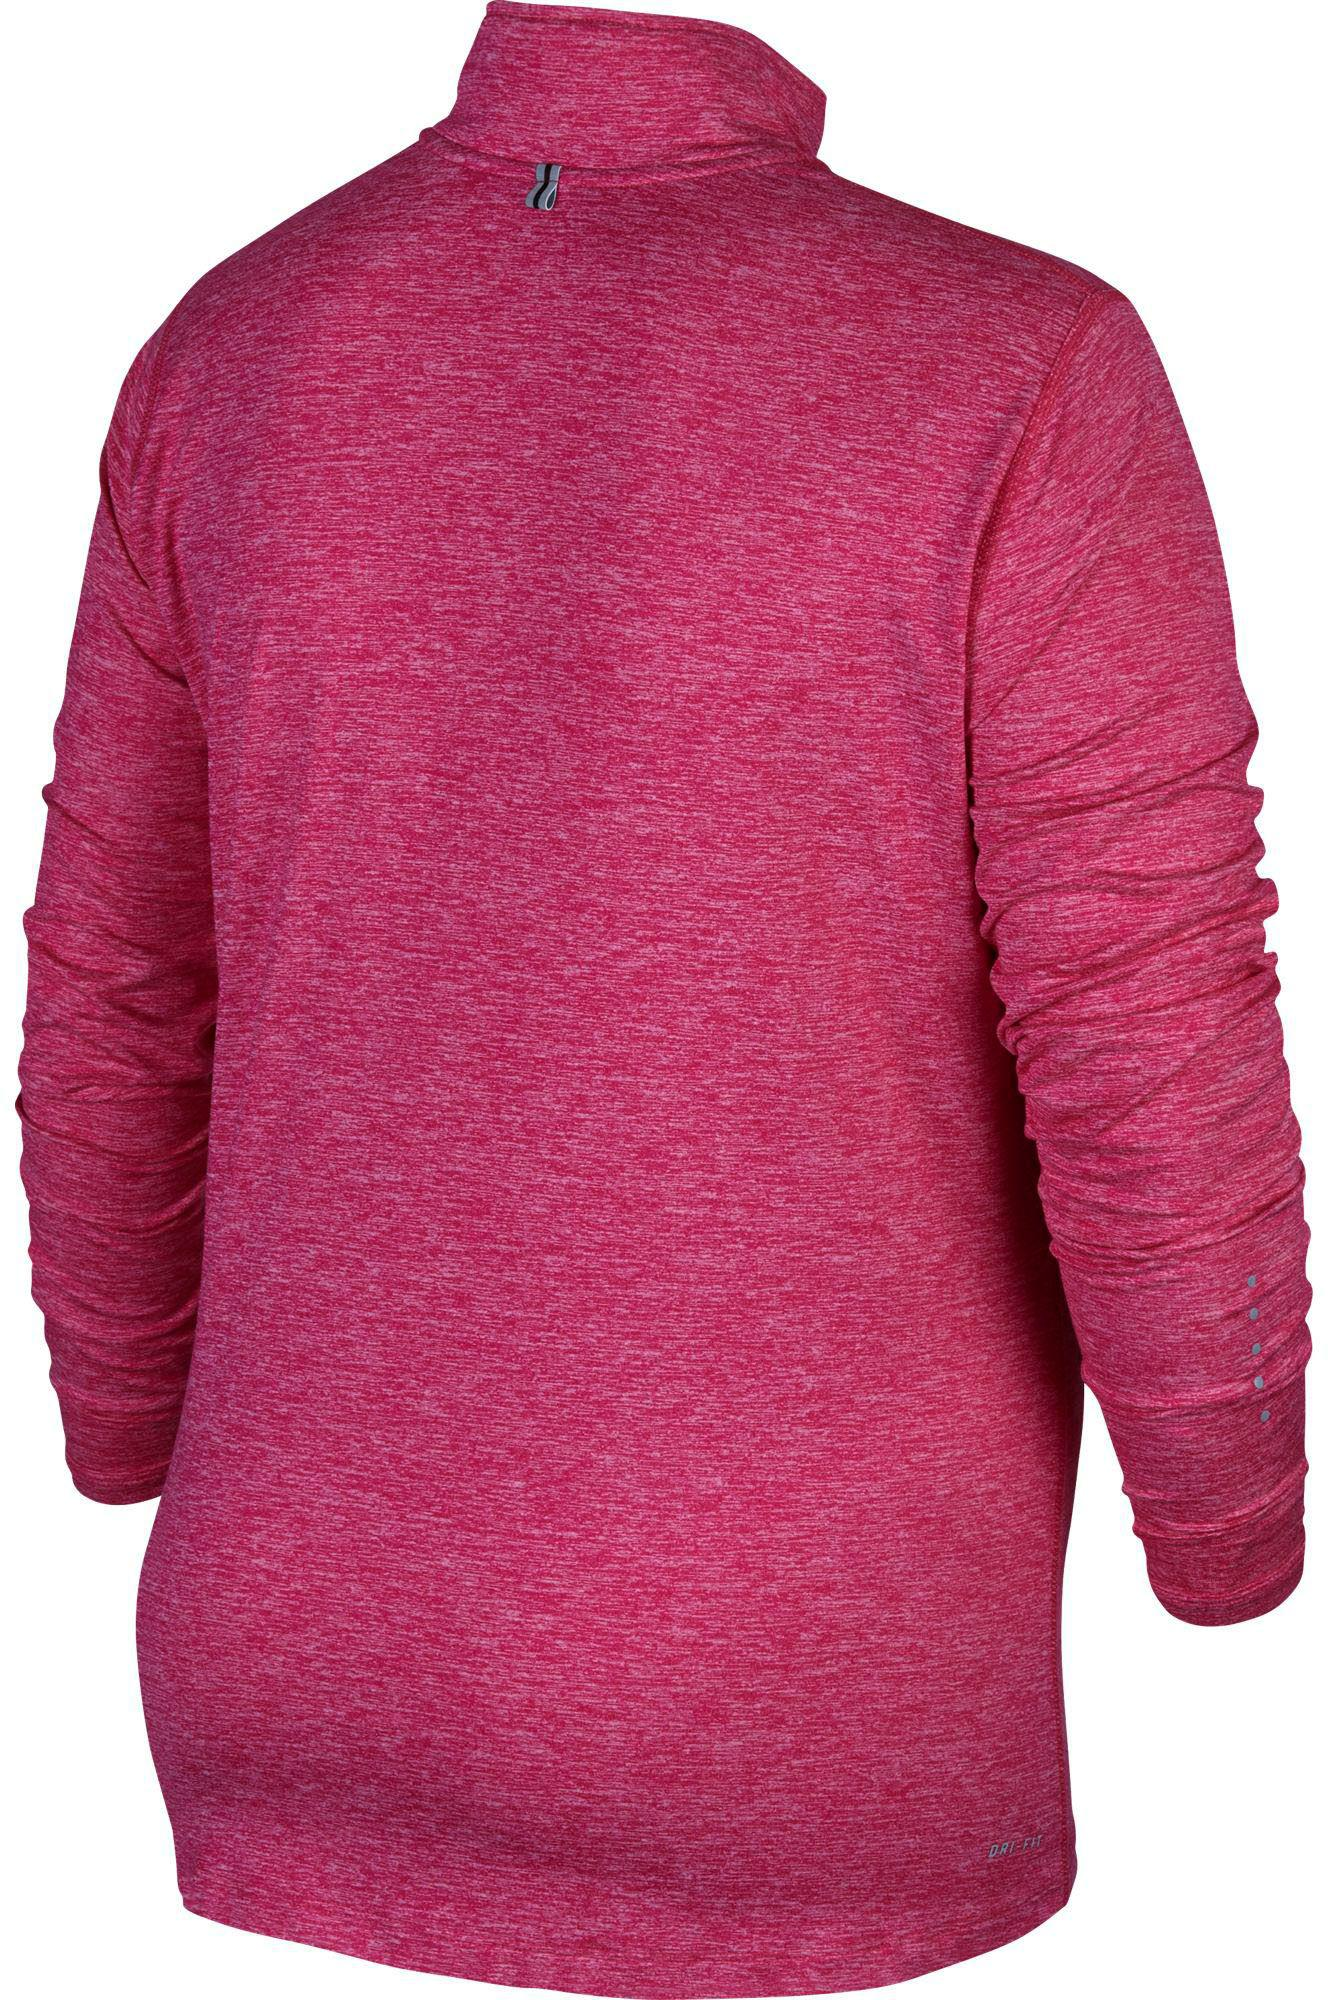 0ae407a6a13 Lyst - Nike Plus Size Element Half Zip Long Sleeve Running Shirt in Pink